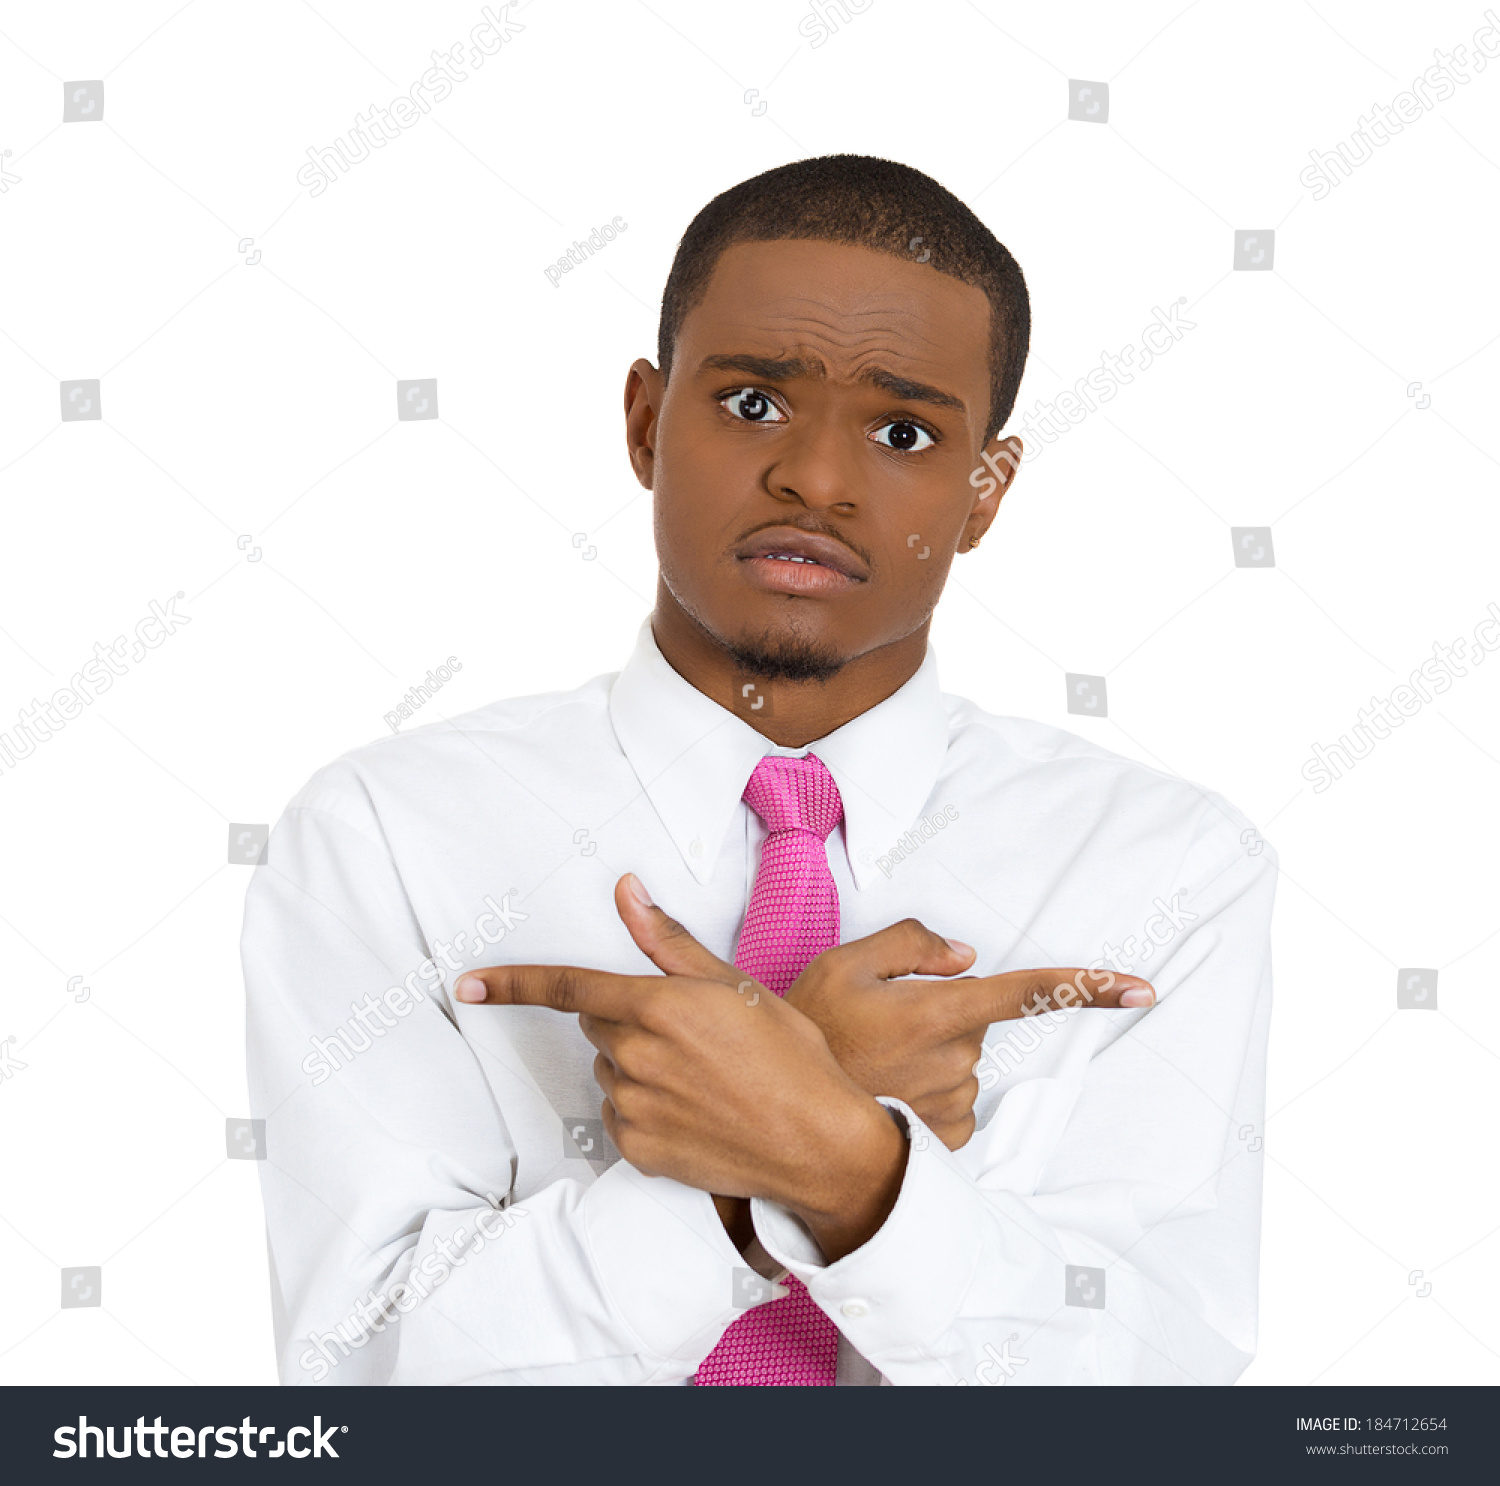 Closeup Portrait Confused Young Man Pointing In Two Different Directions Not Sure Which Way